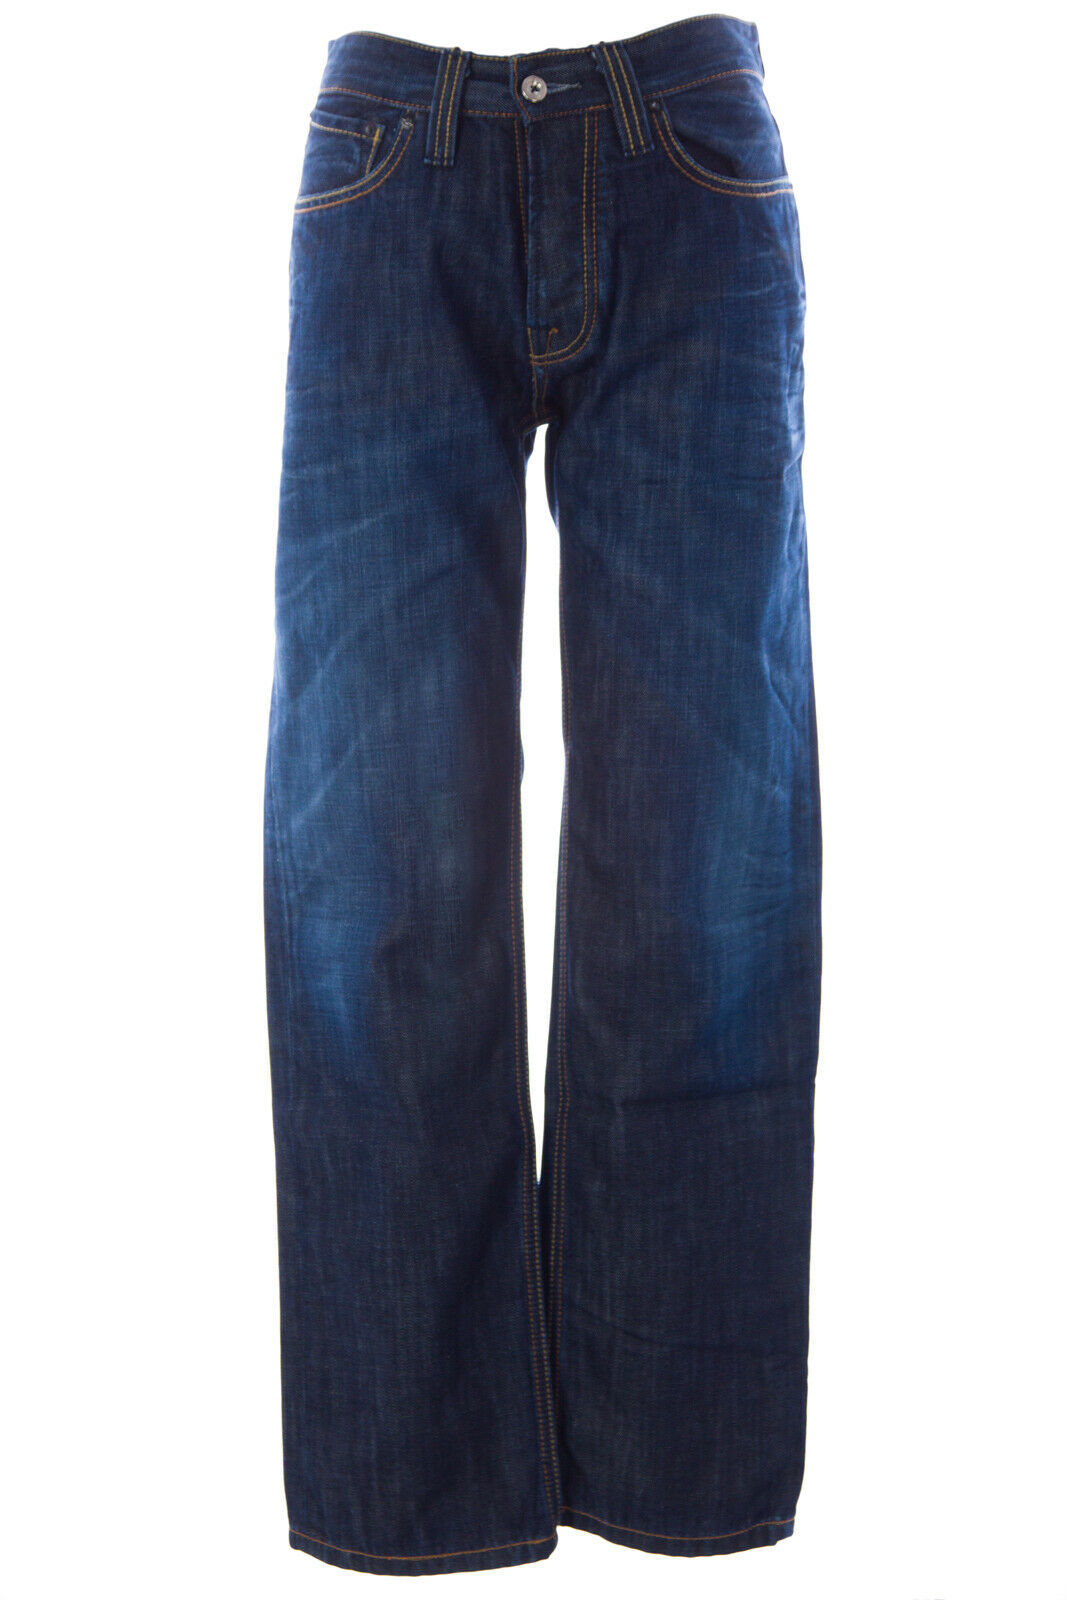 blueE BLOOD Men's Form CTI Dark Wash Button Fly Jeans MDGS0763 Sz 30x32  NWT